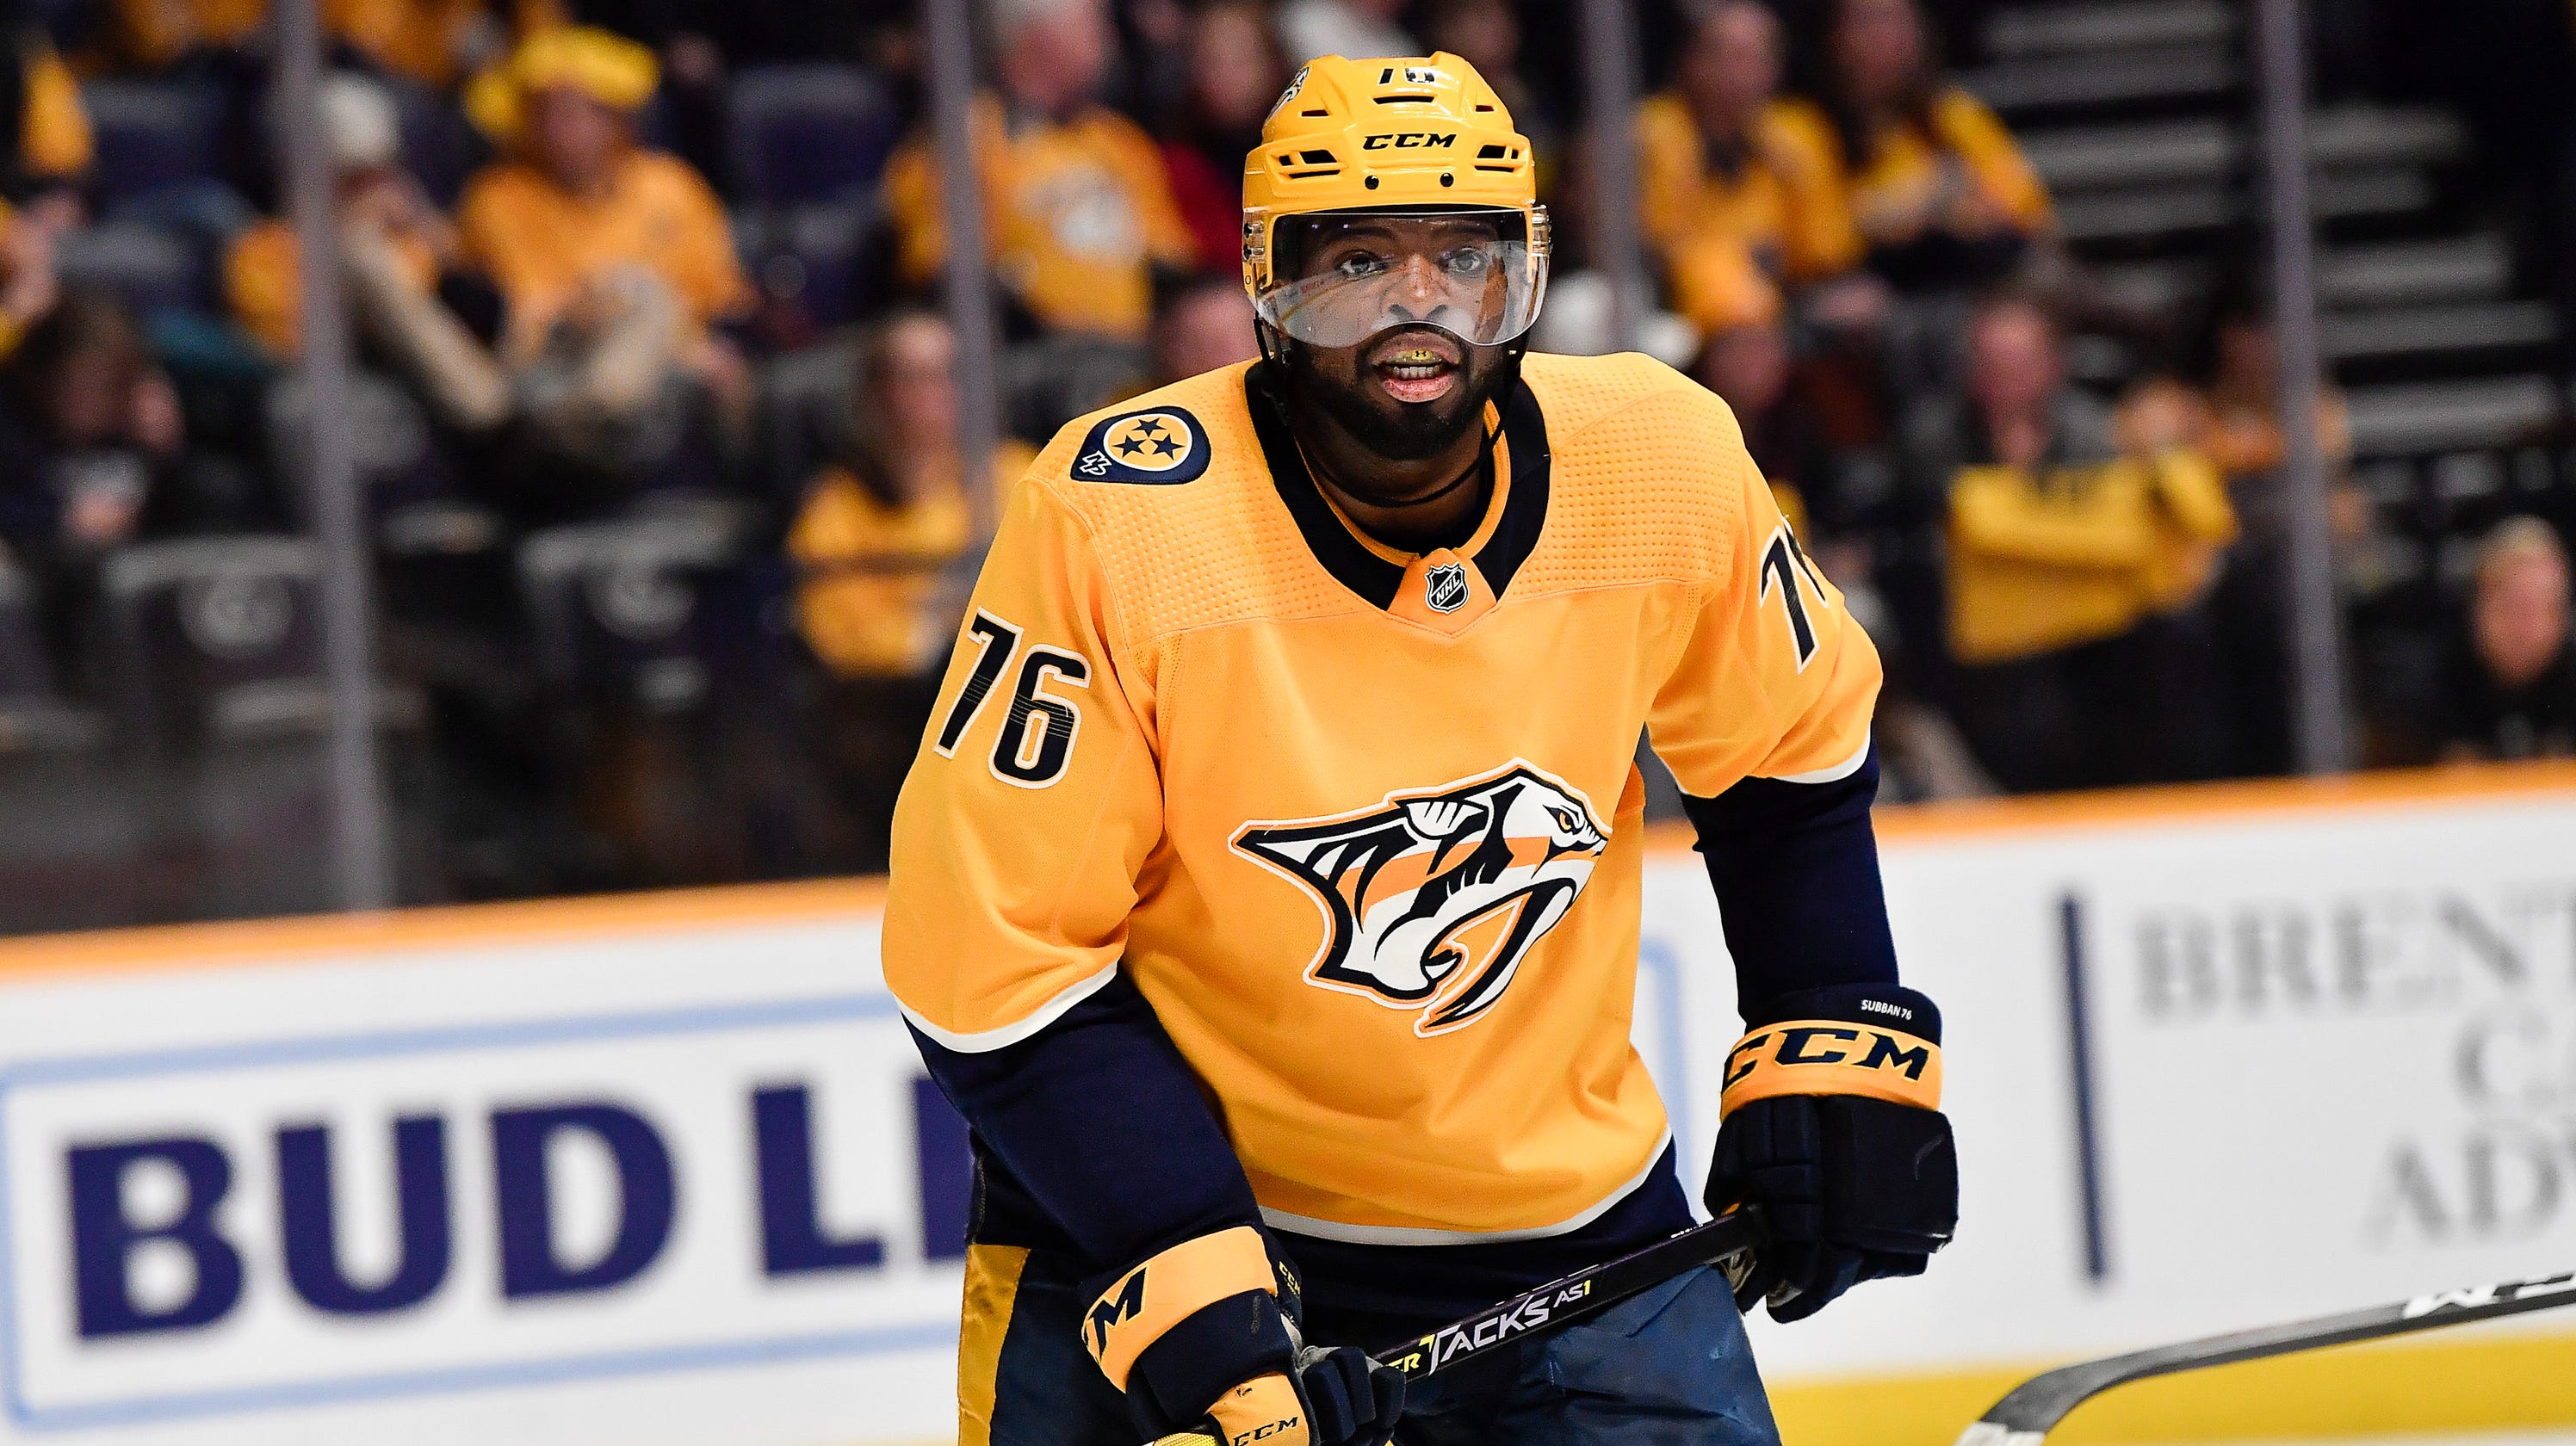 c47ac80be6f PK Subban on his frustrating season with Nashville Predators